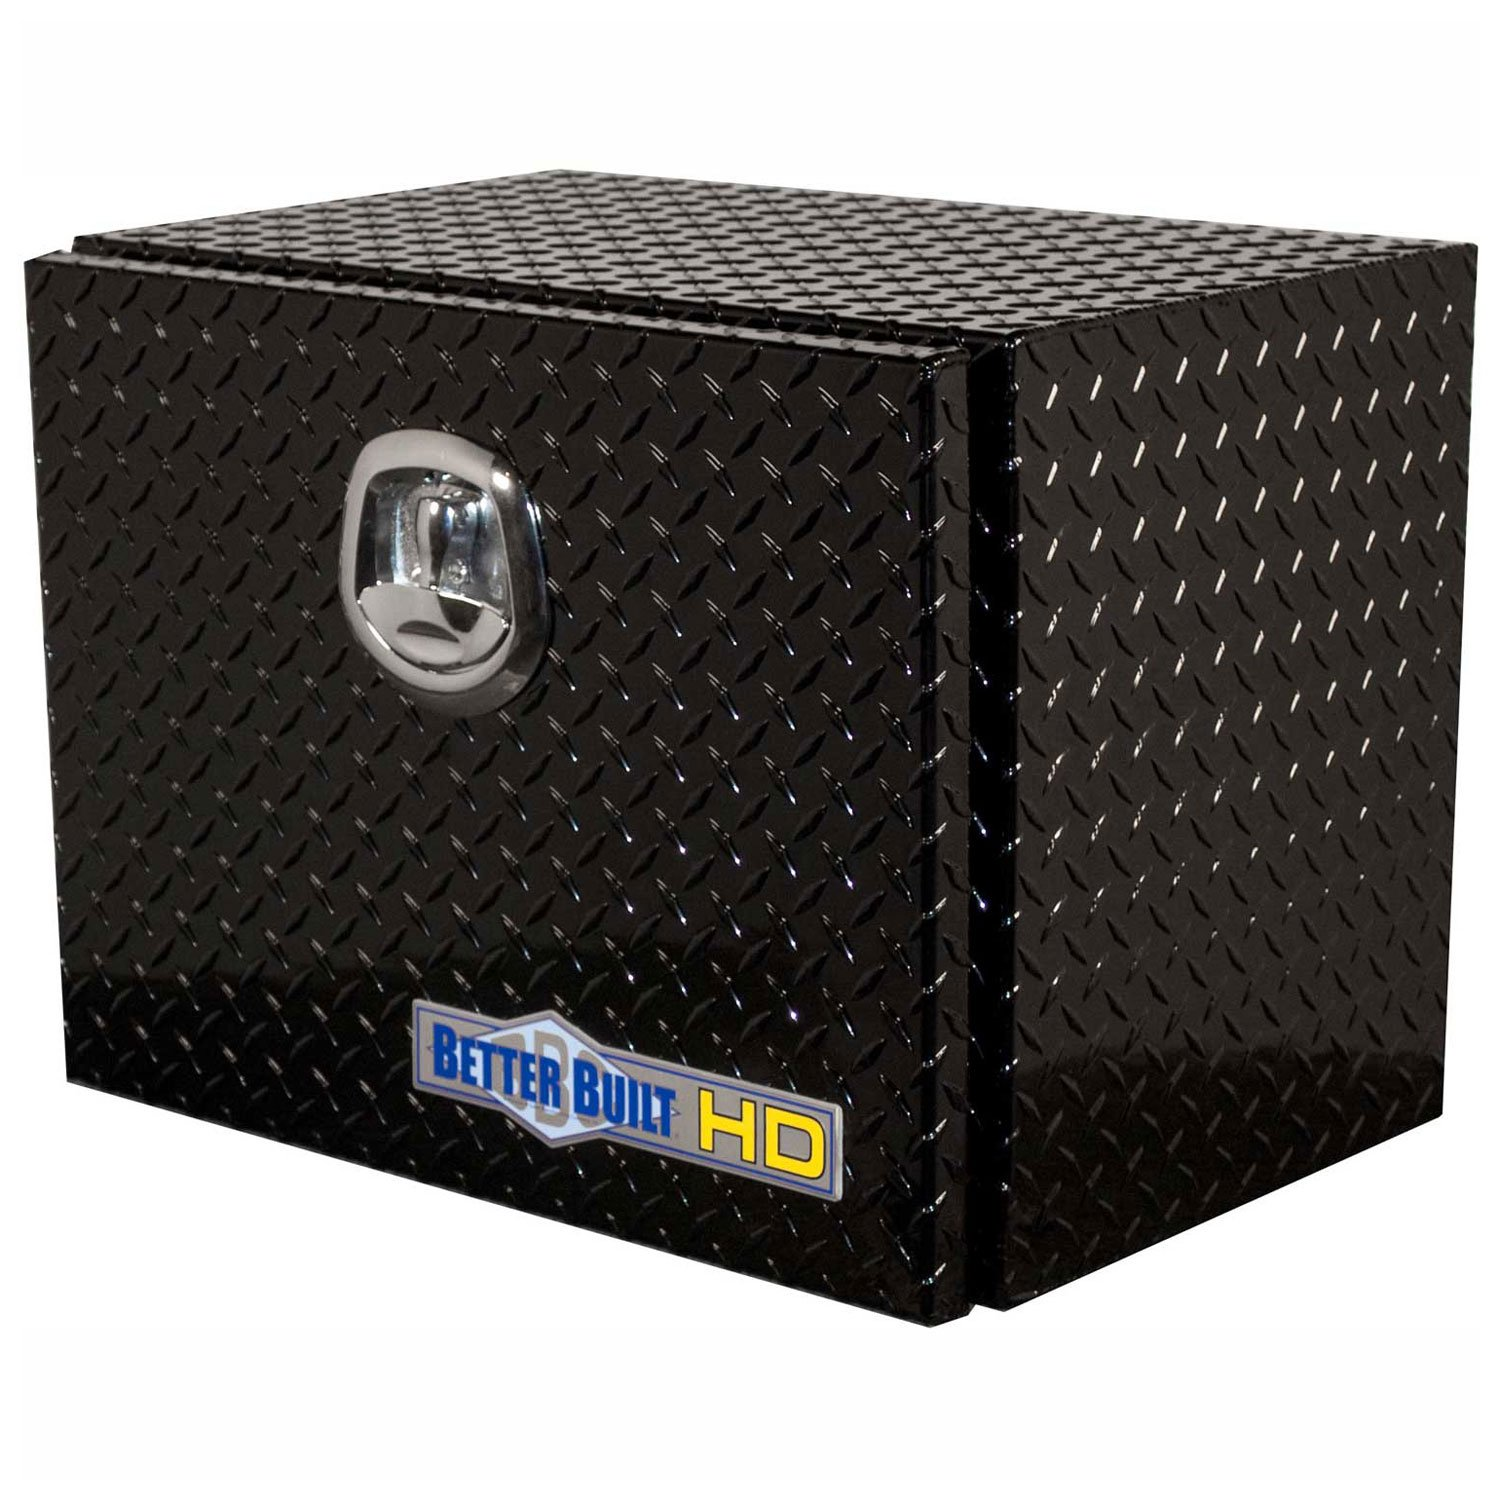 Better Built Heavy Duty Aluminum Underbody Truck Box, Black 36''L x 18'' - 37224304